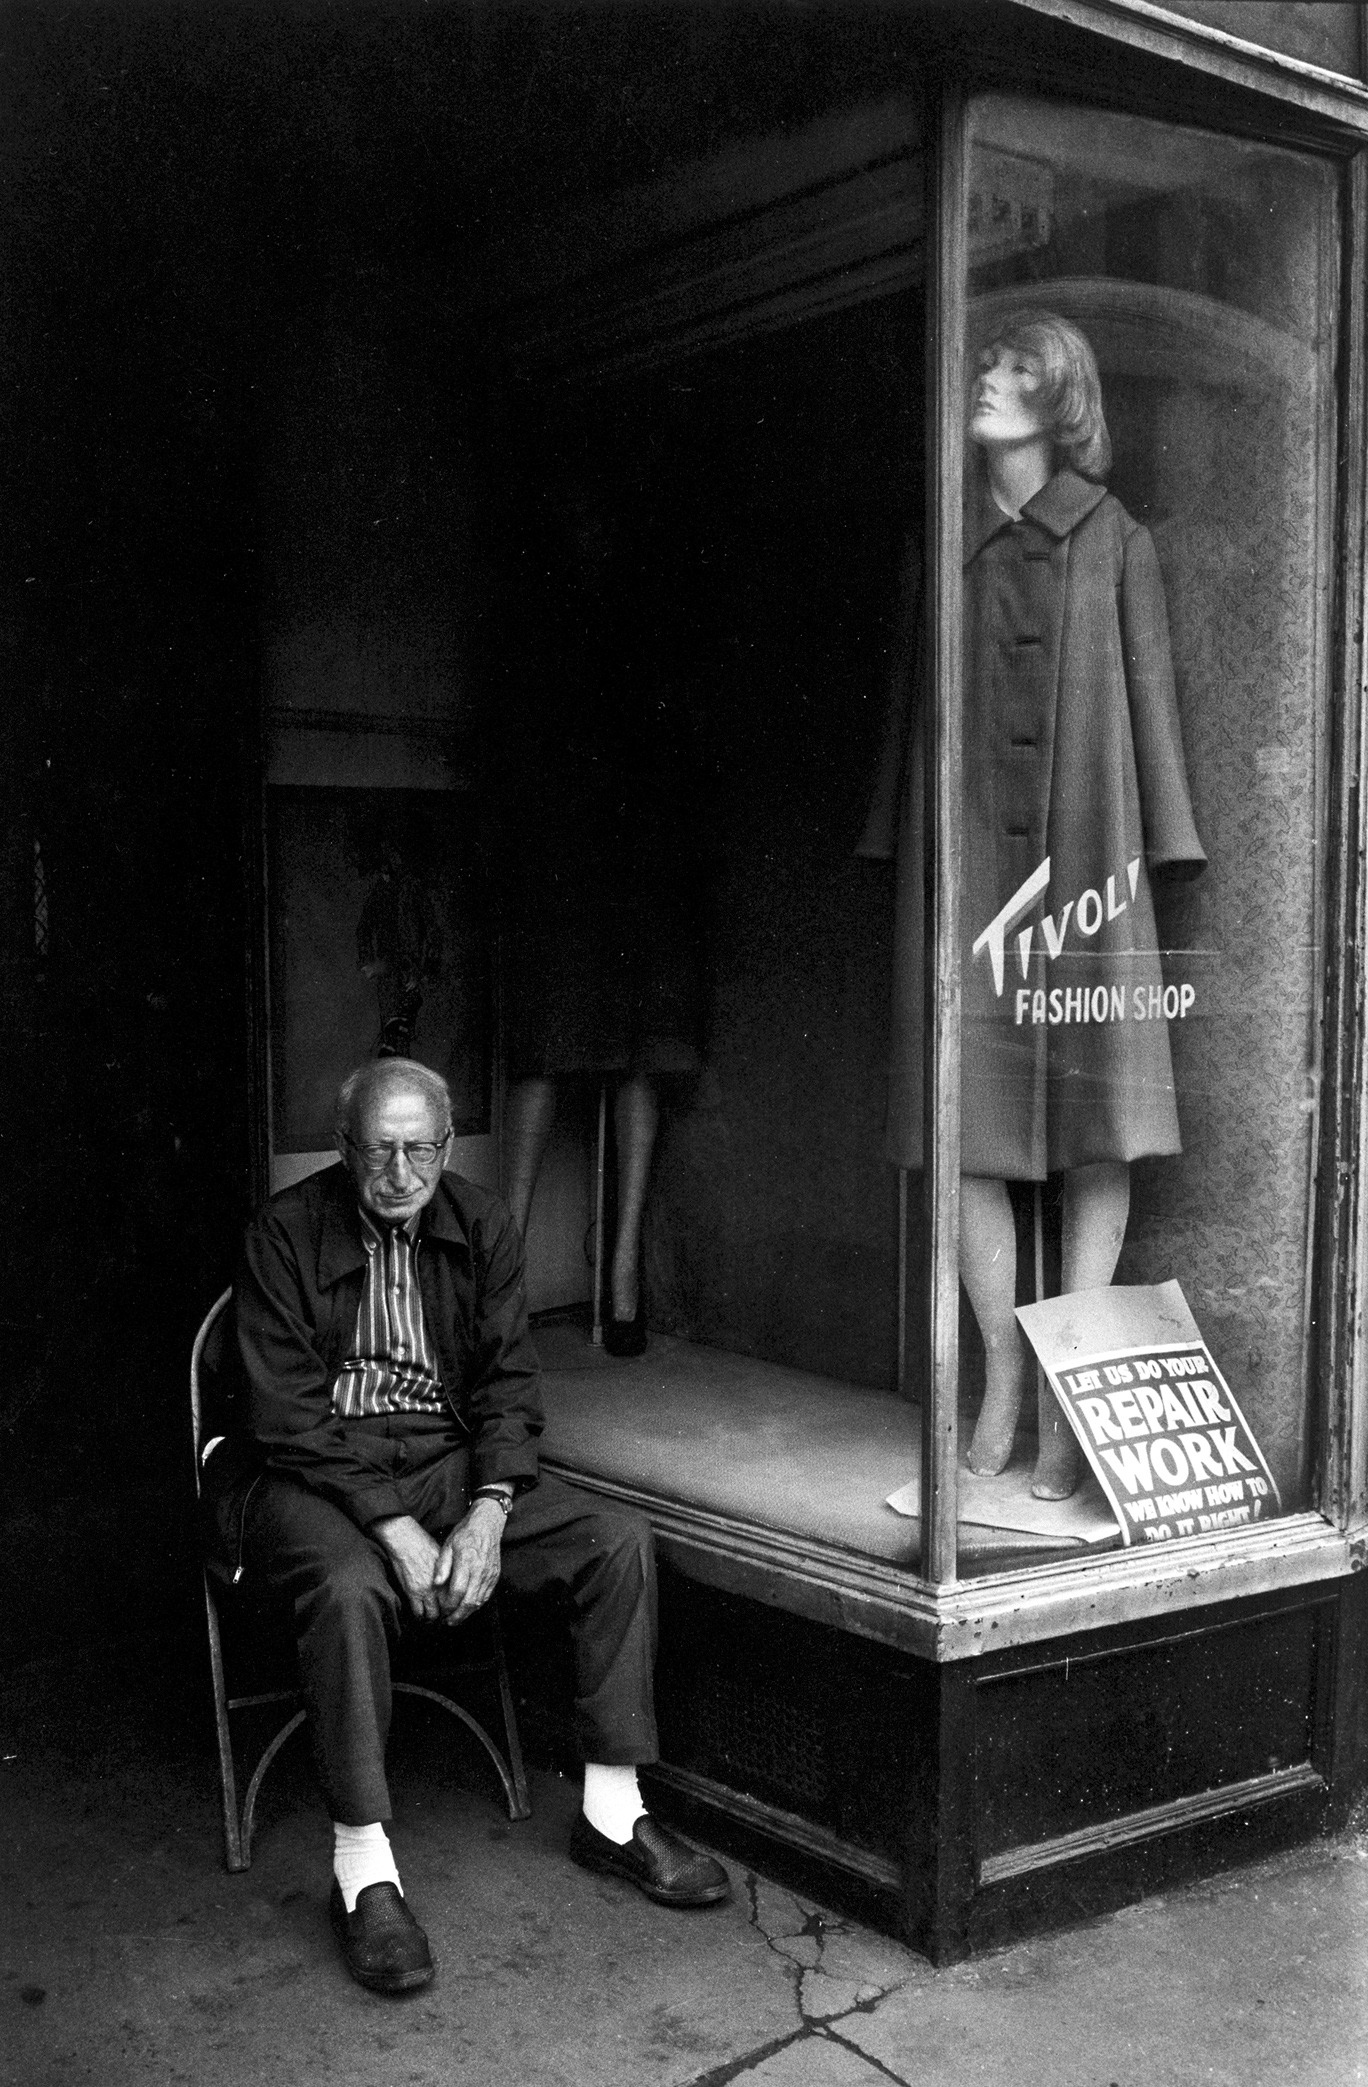 LONELY...Tivoli Fashion Shop taken in 1973.Pic: Jill Freedman/Getty Images